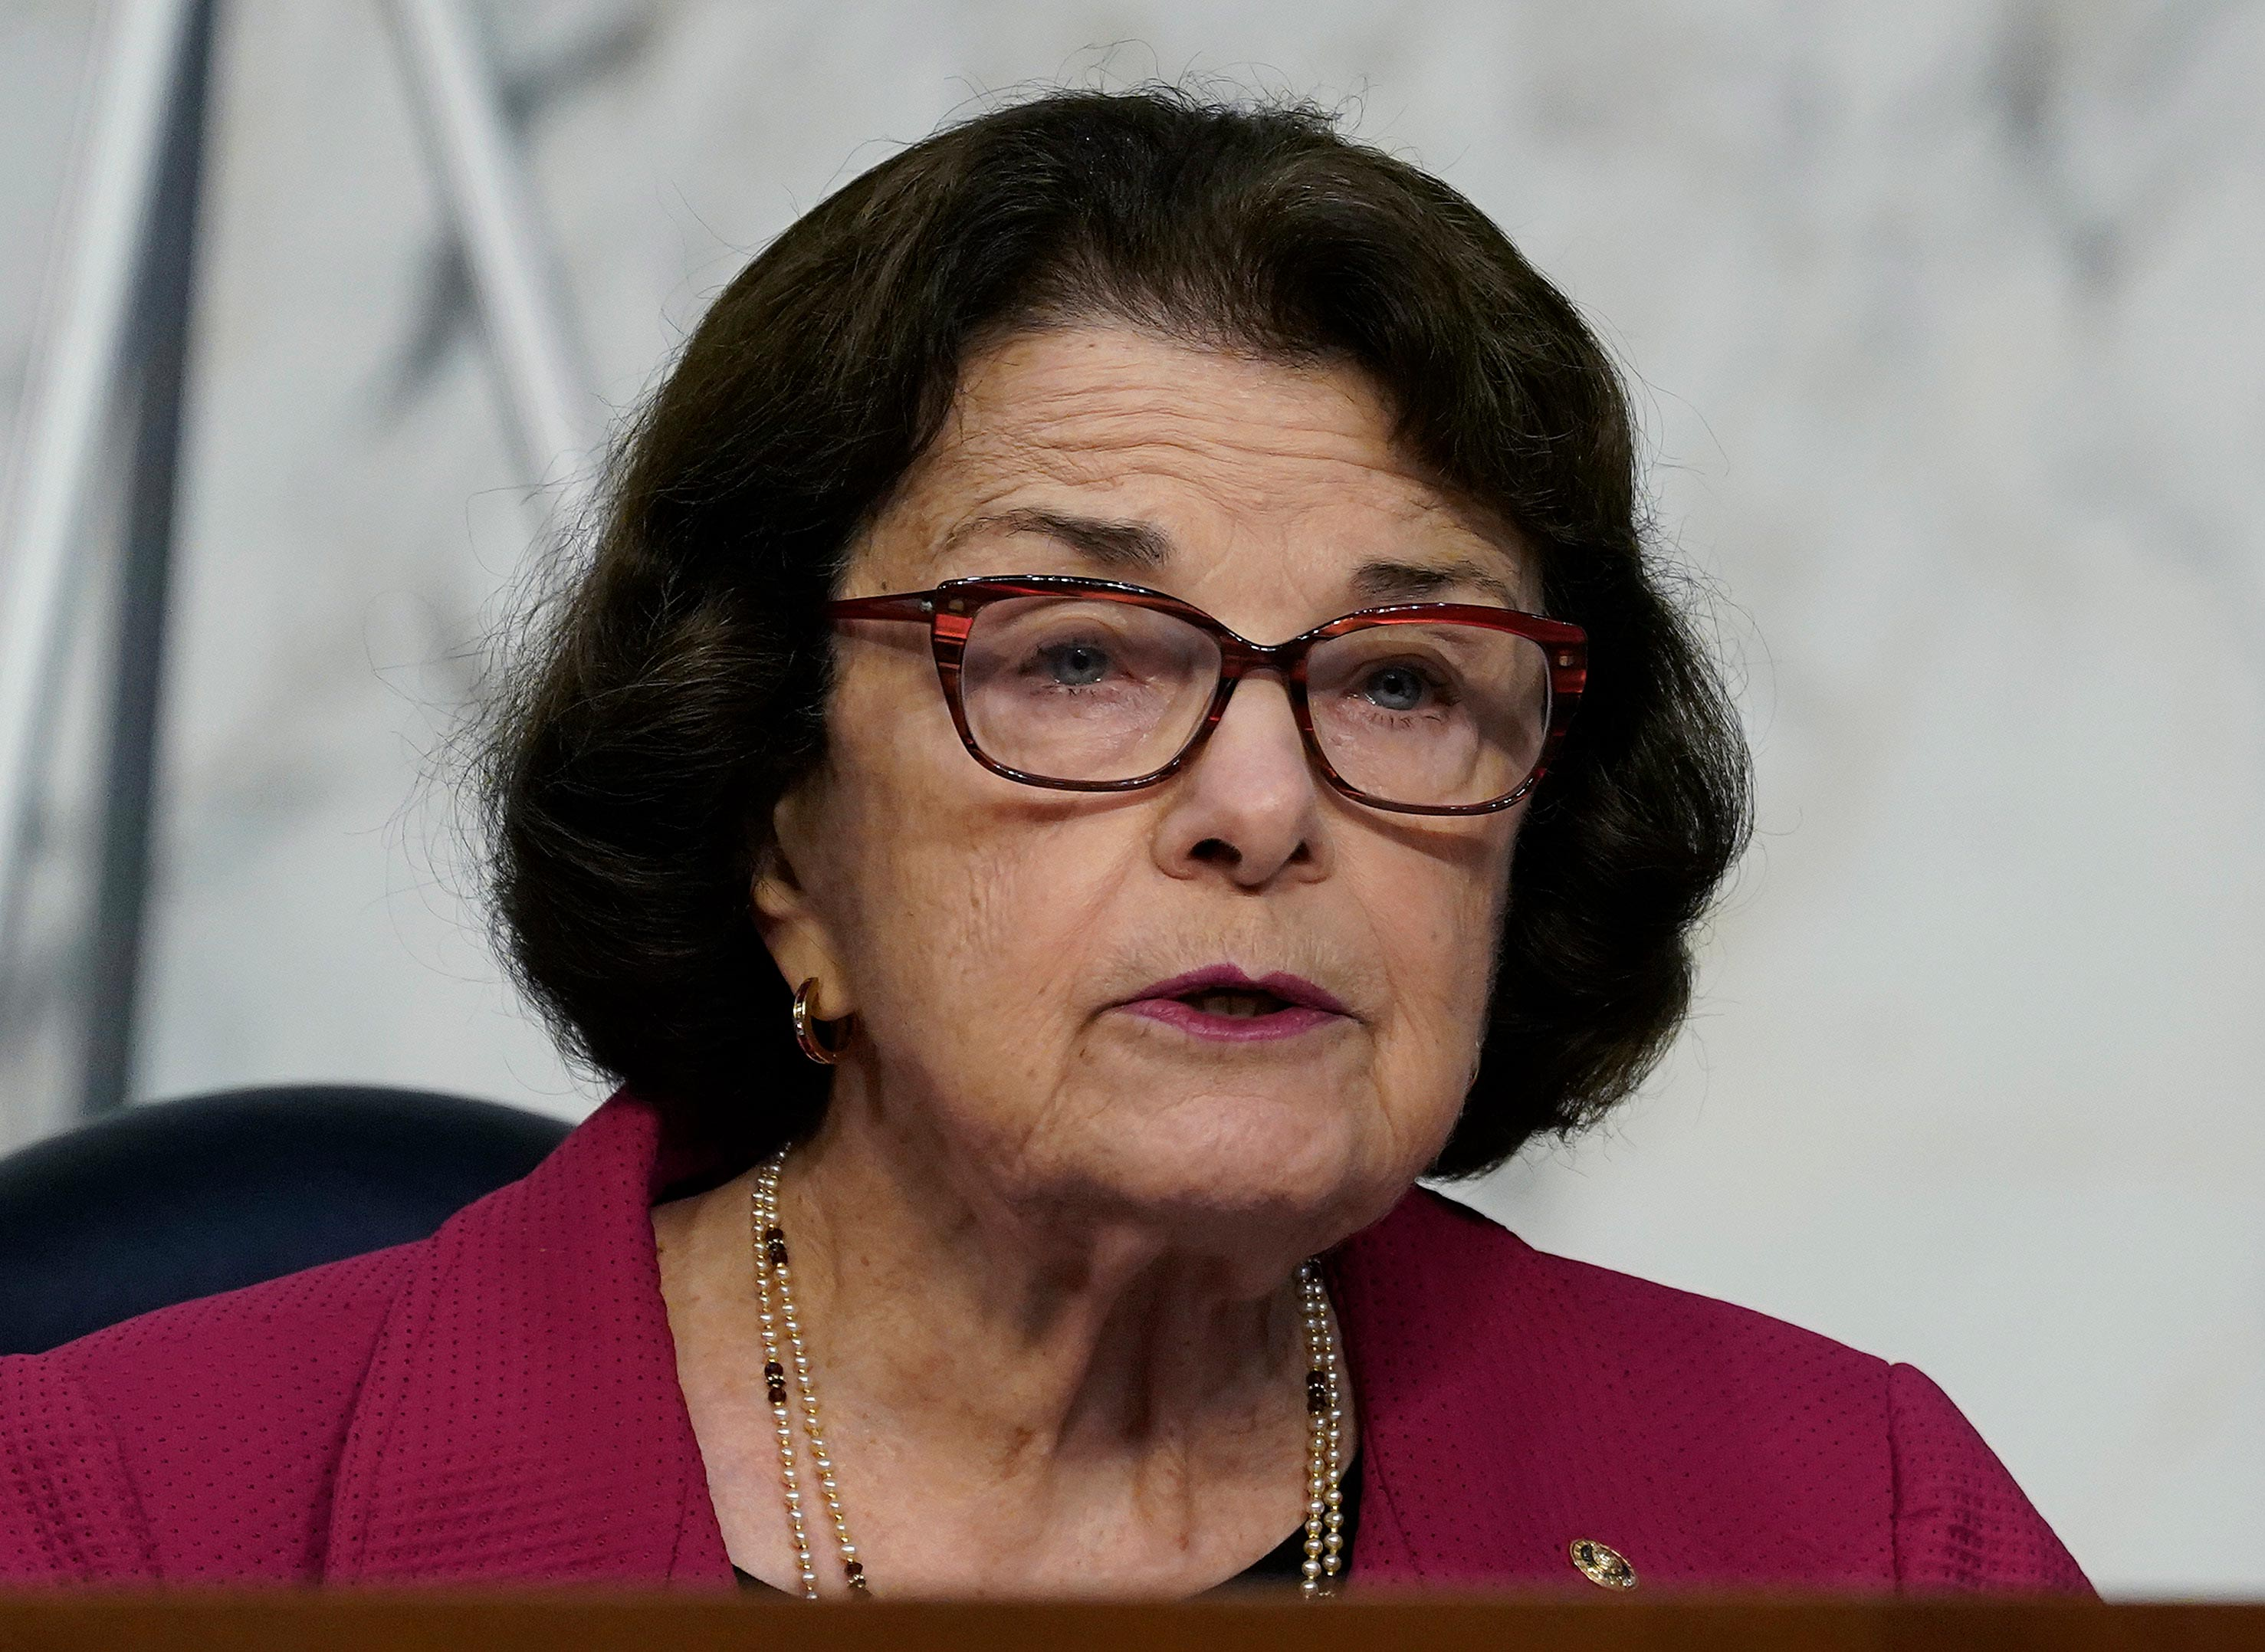 GOP rushes to Feinstein's defense after her praise of Barrett hearings prompts Democratic fury